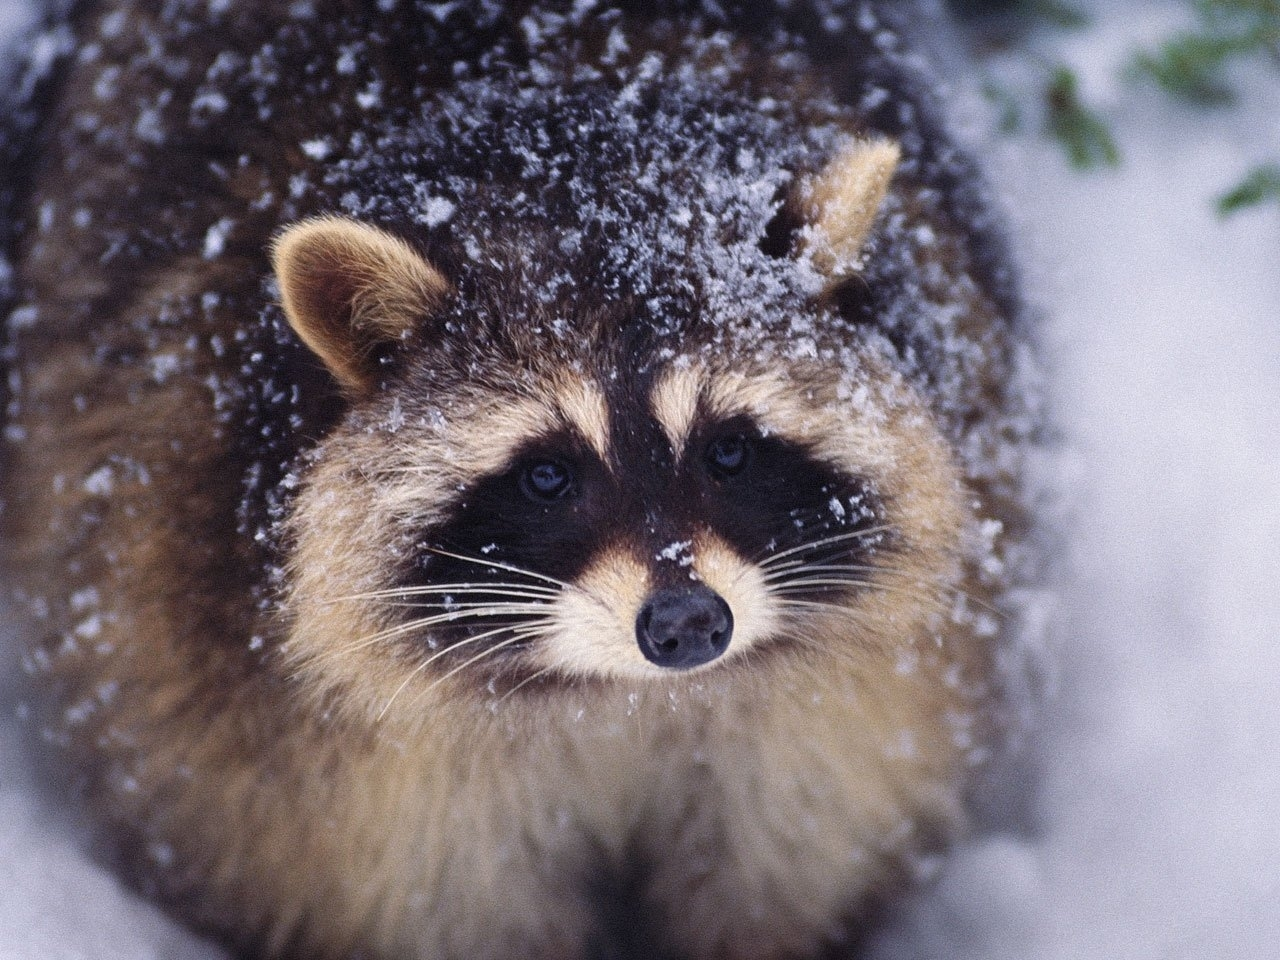 28632 download wallpaper Animals, Raccoons screensavers and pictures for free